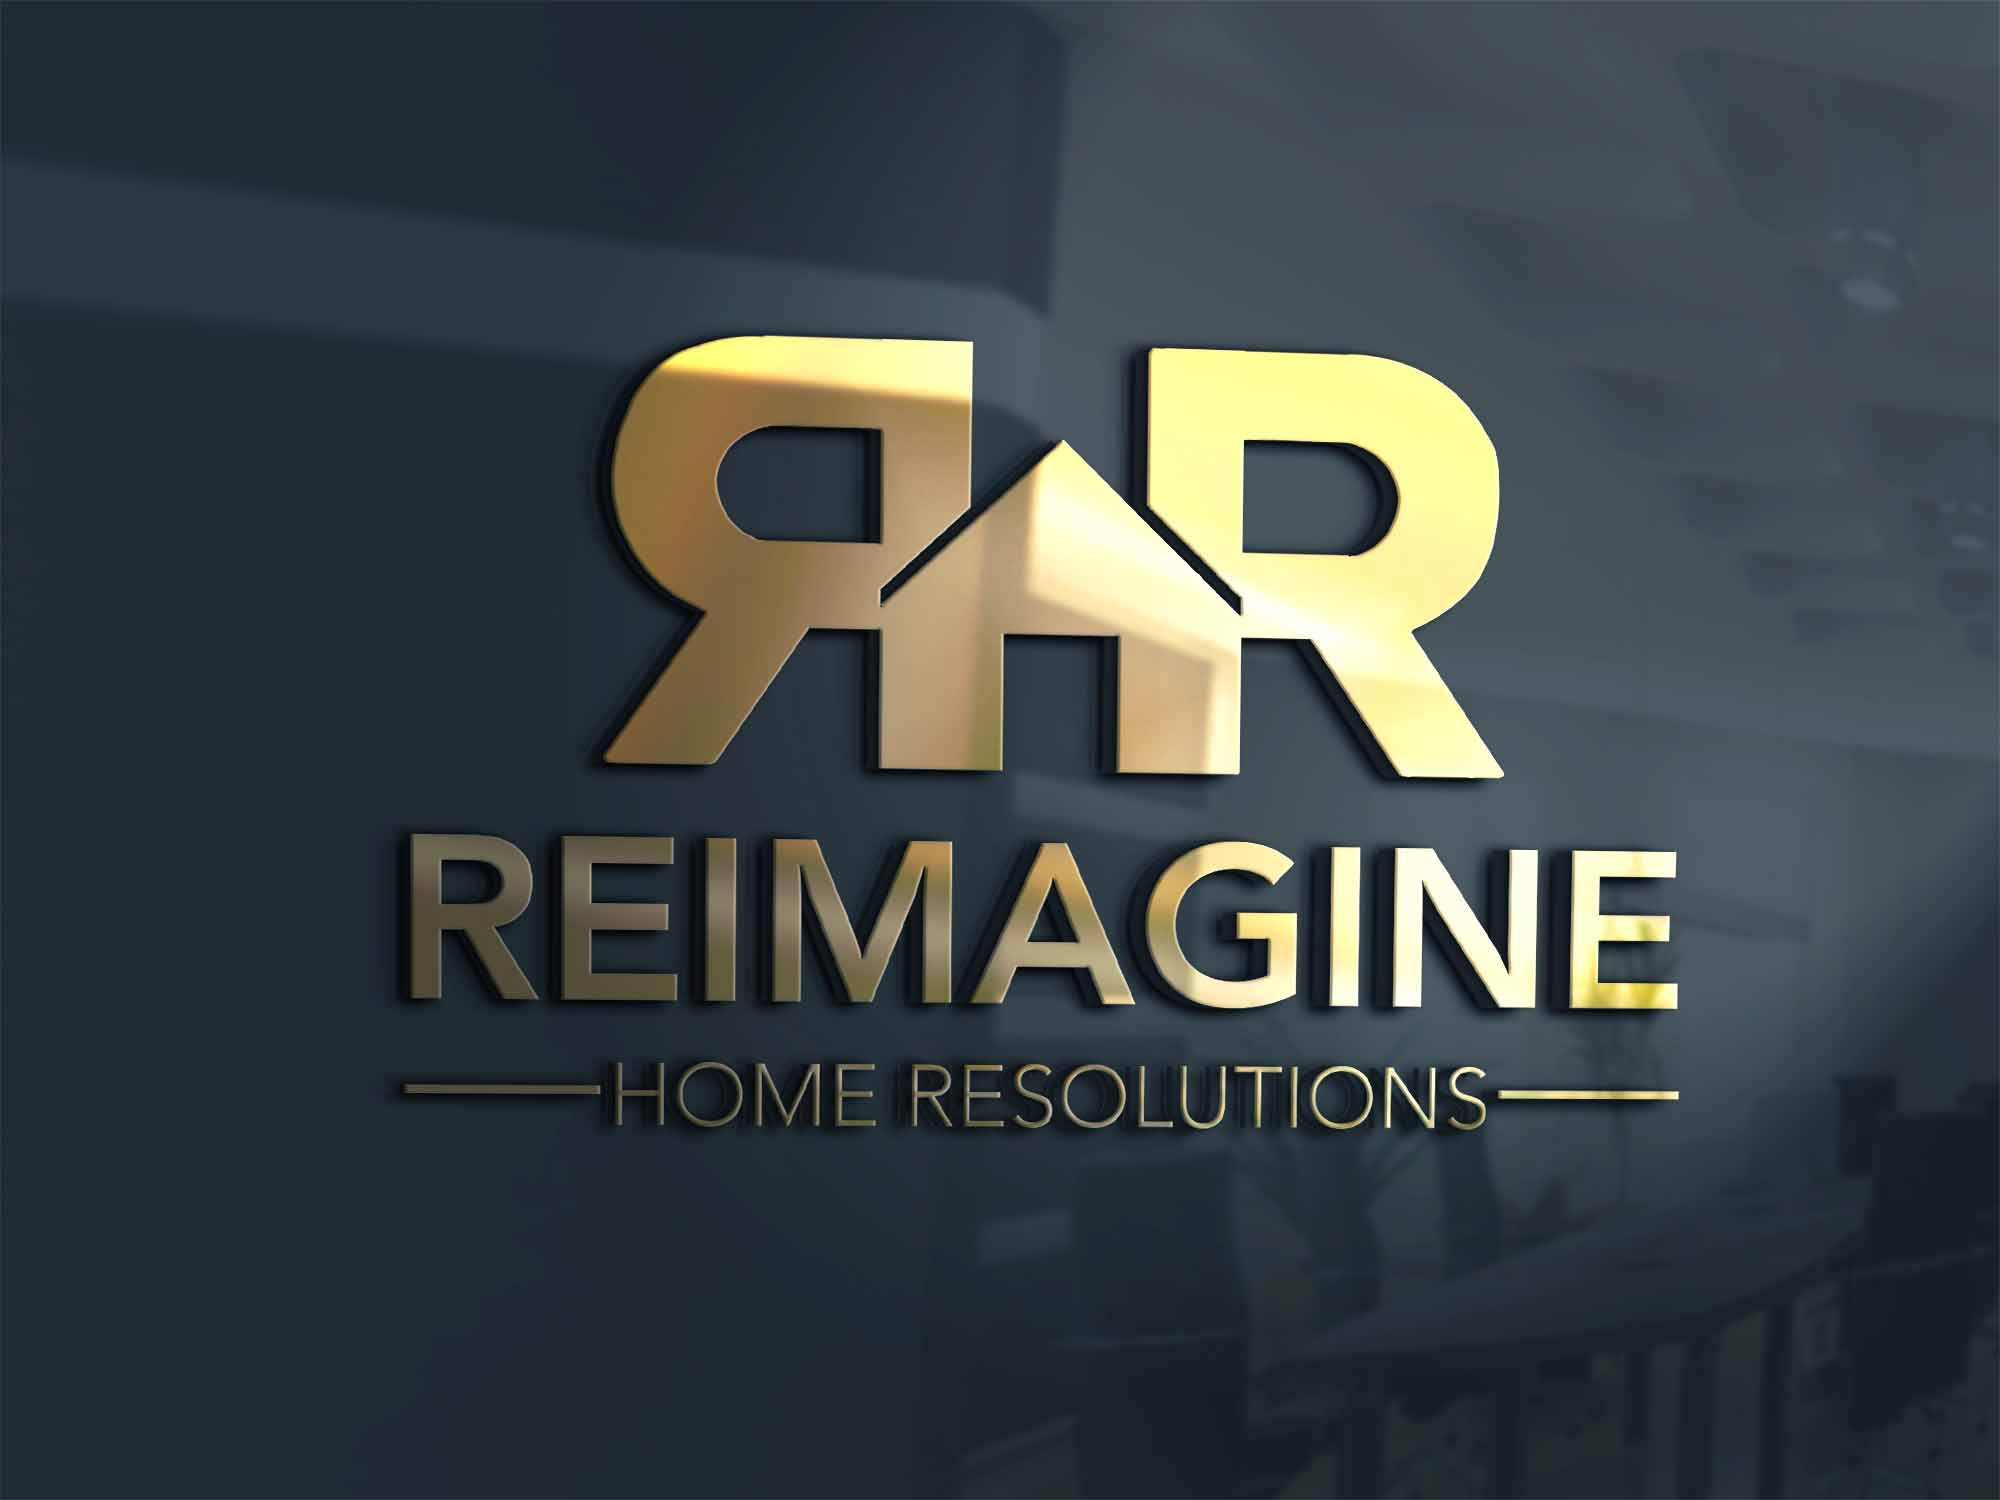 Reimagine Home Resolutions